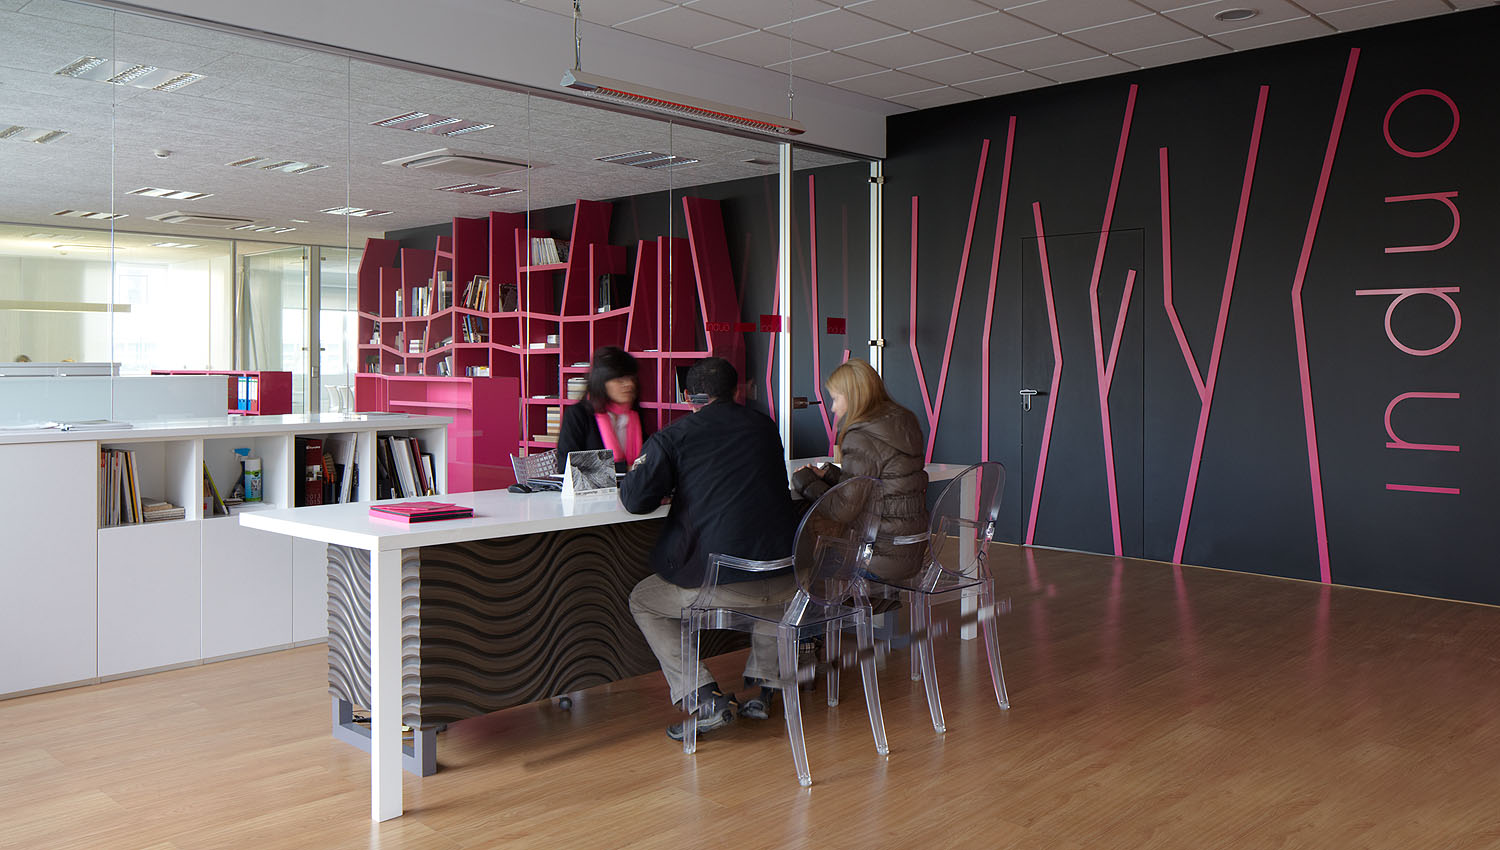 Oficinas Induo Collection, zaratuz